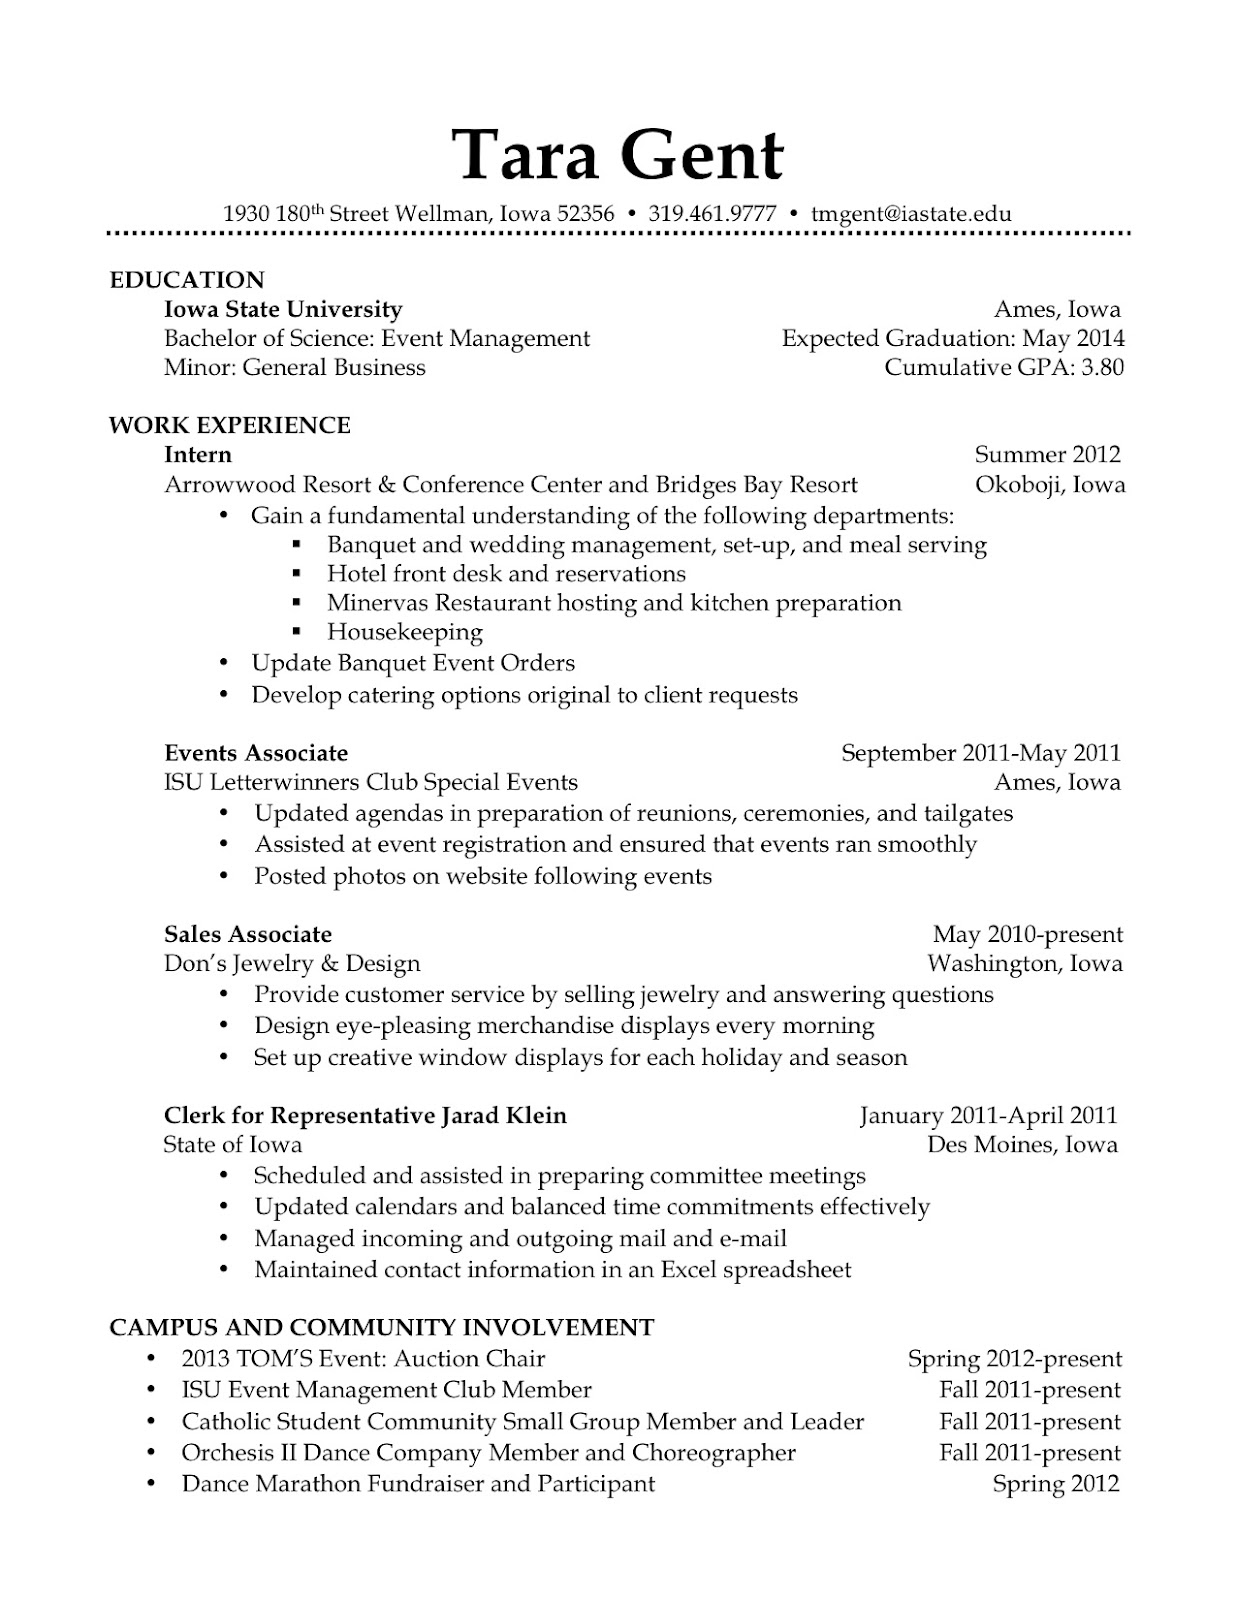 sample resume barista skills resume builder sample resume barista skills barista resume samples jobhero home images barista resume samples picture barista resume